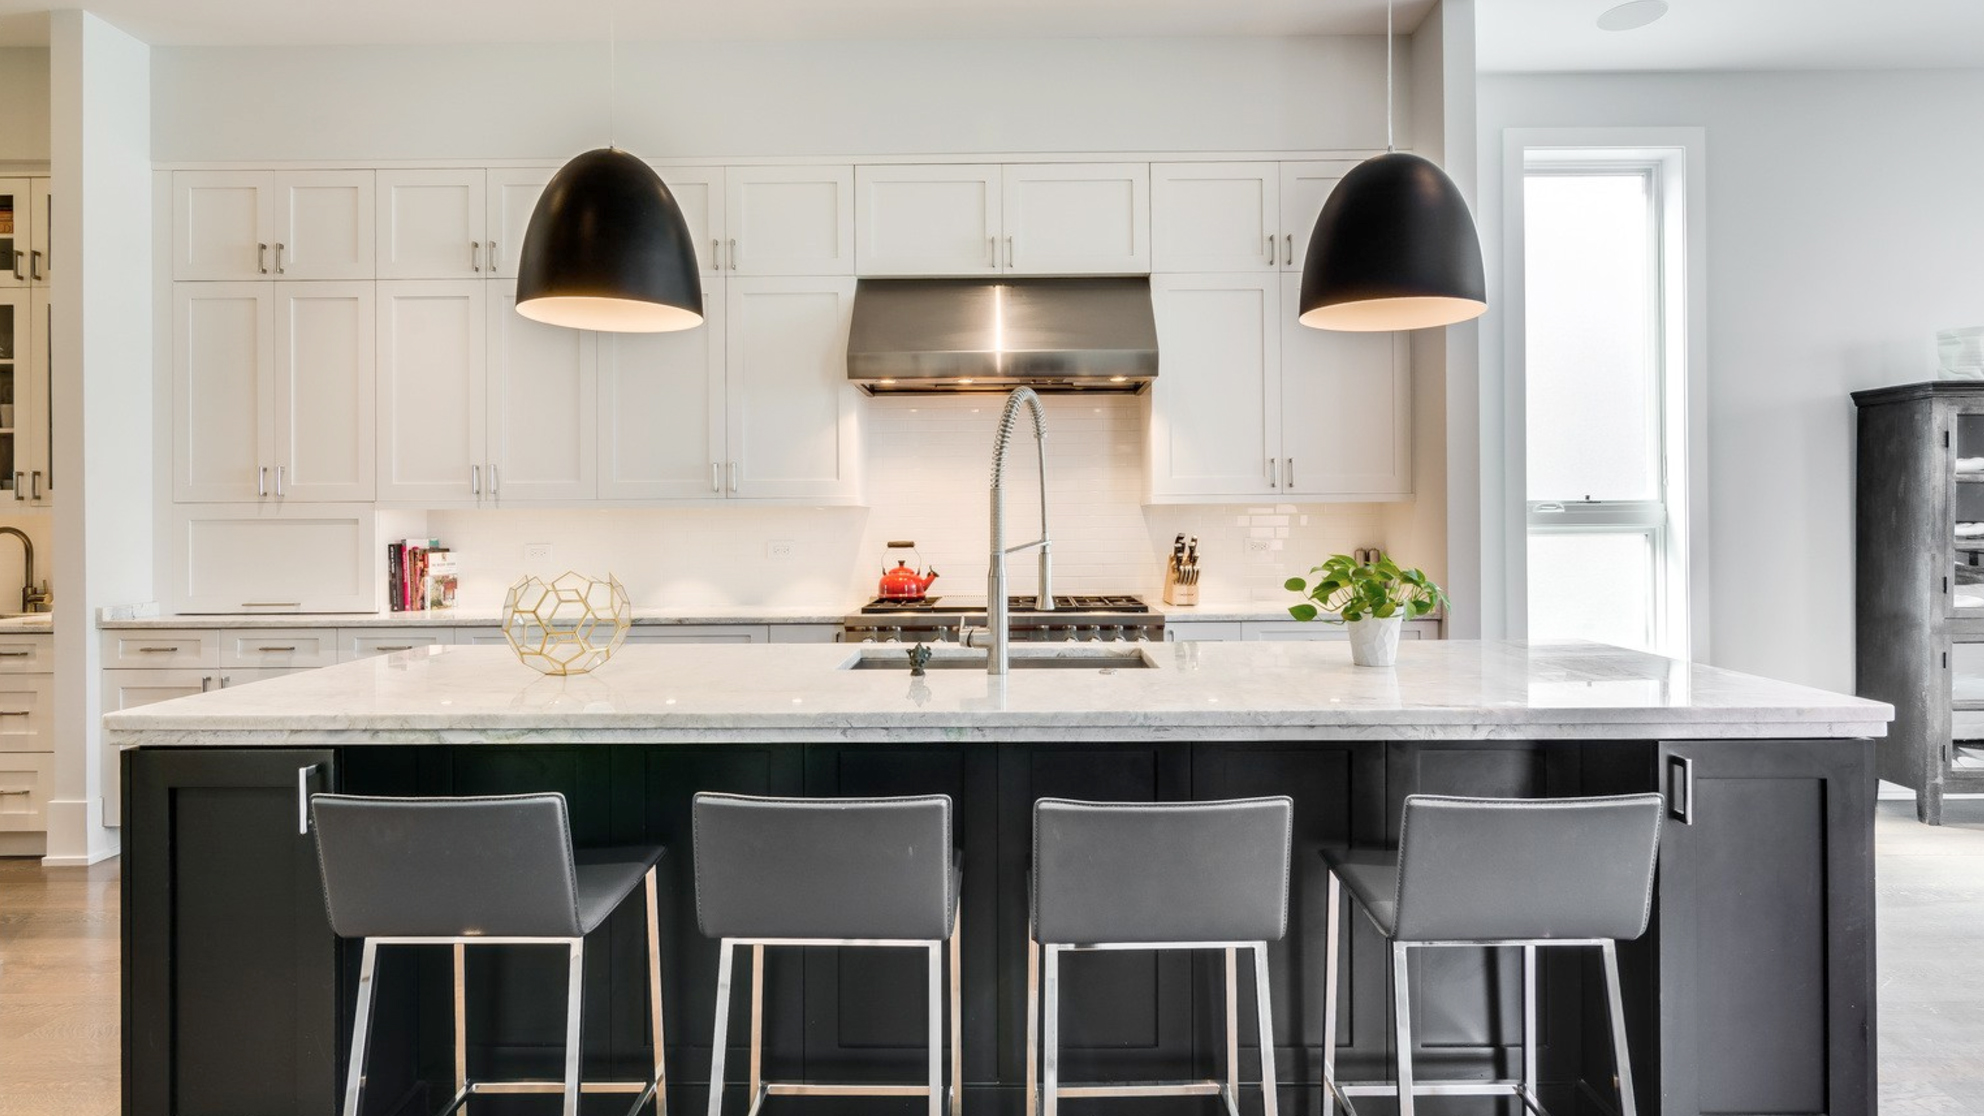 6 Gorgeous Chicago Kitchens You Have to See